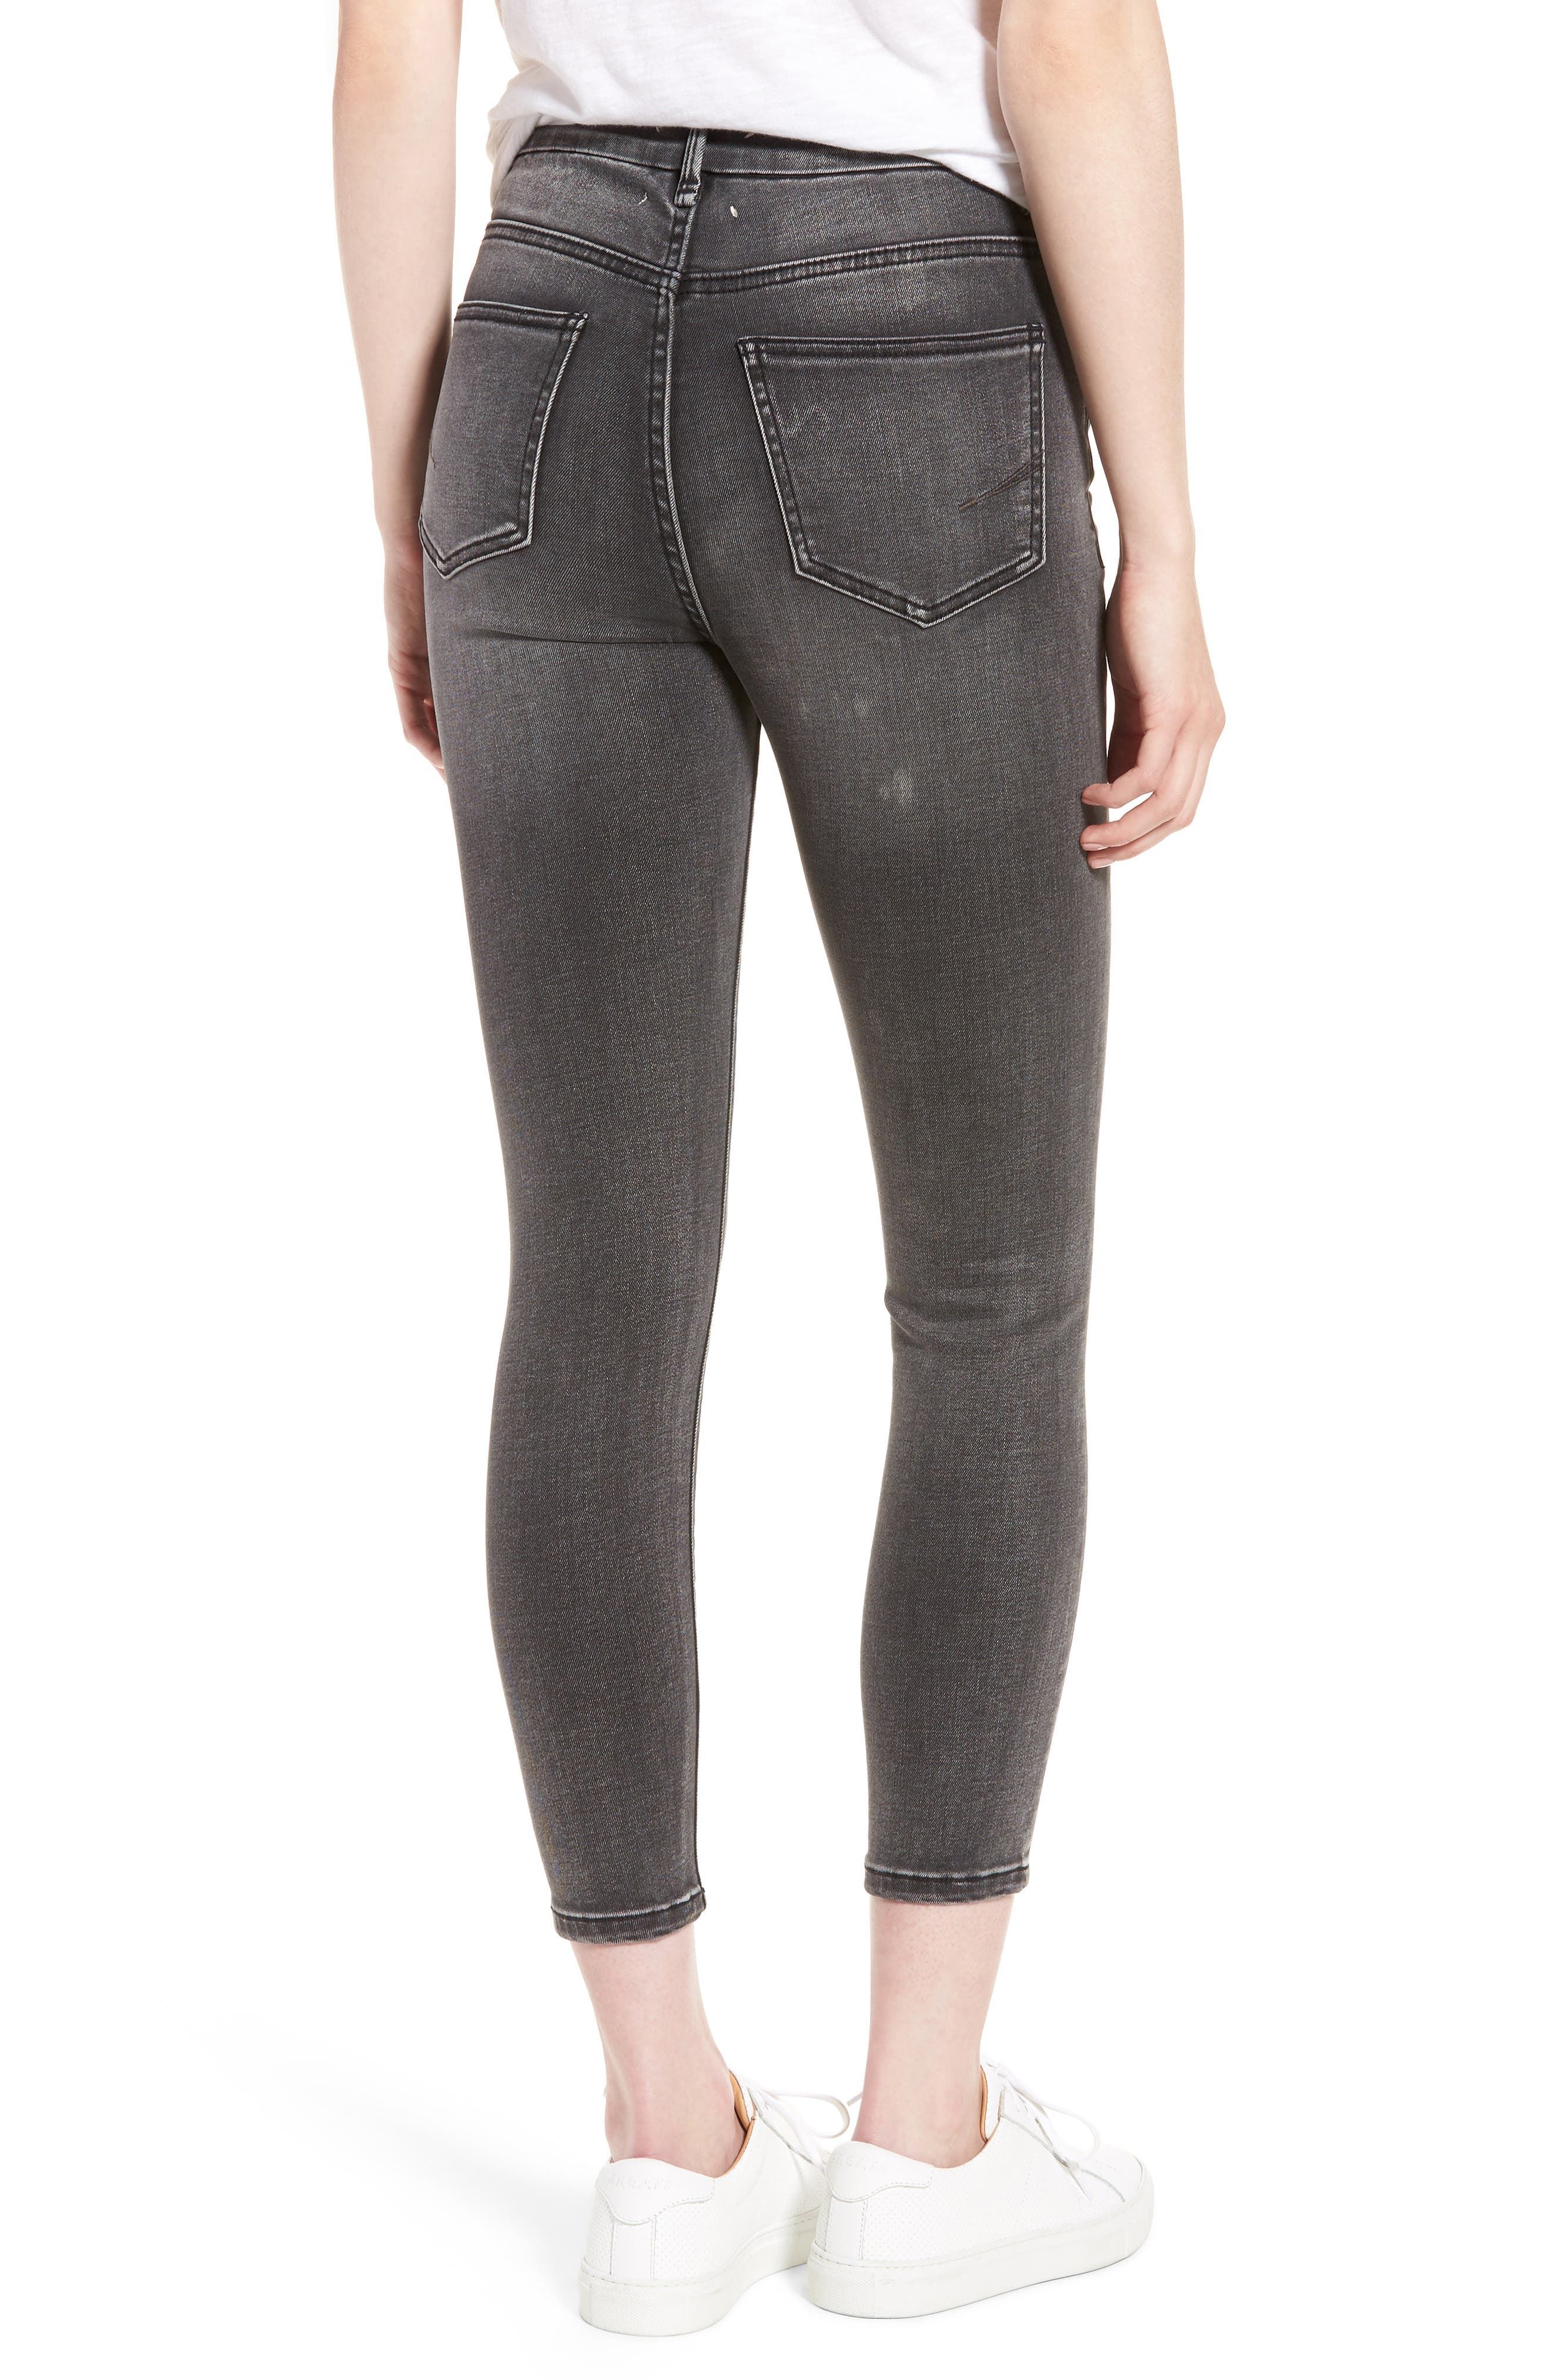 Cressa High Rise Ankle Skinny Jeans,                             Alternate thumbnail 2, color,                             022